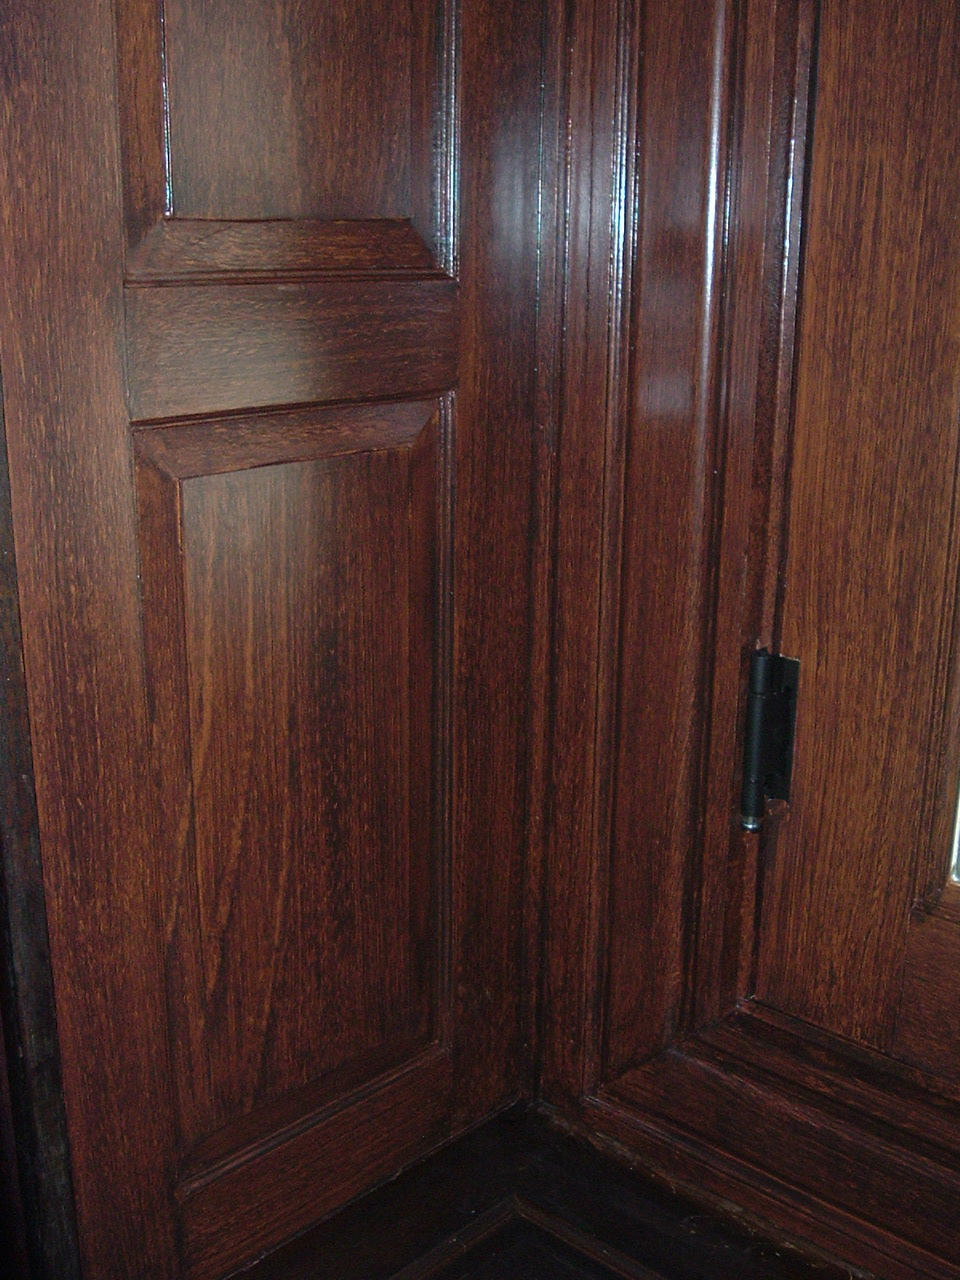 Faux wood grain,  private residence, Philadelphia, PA